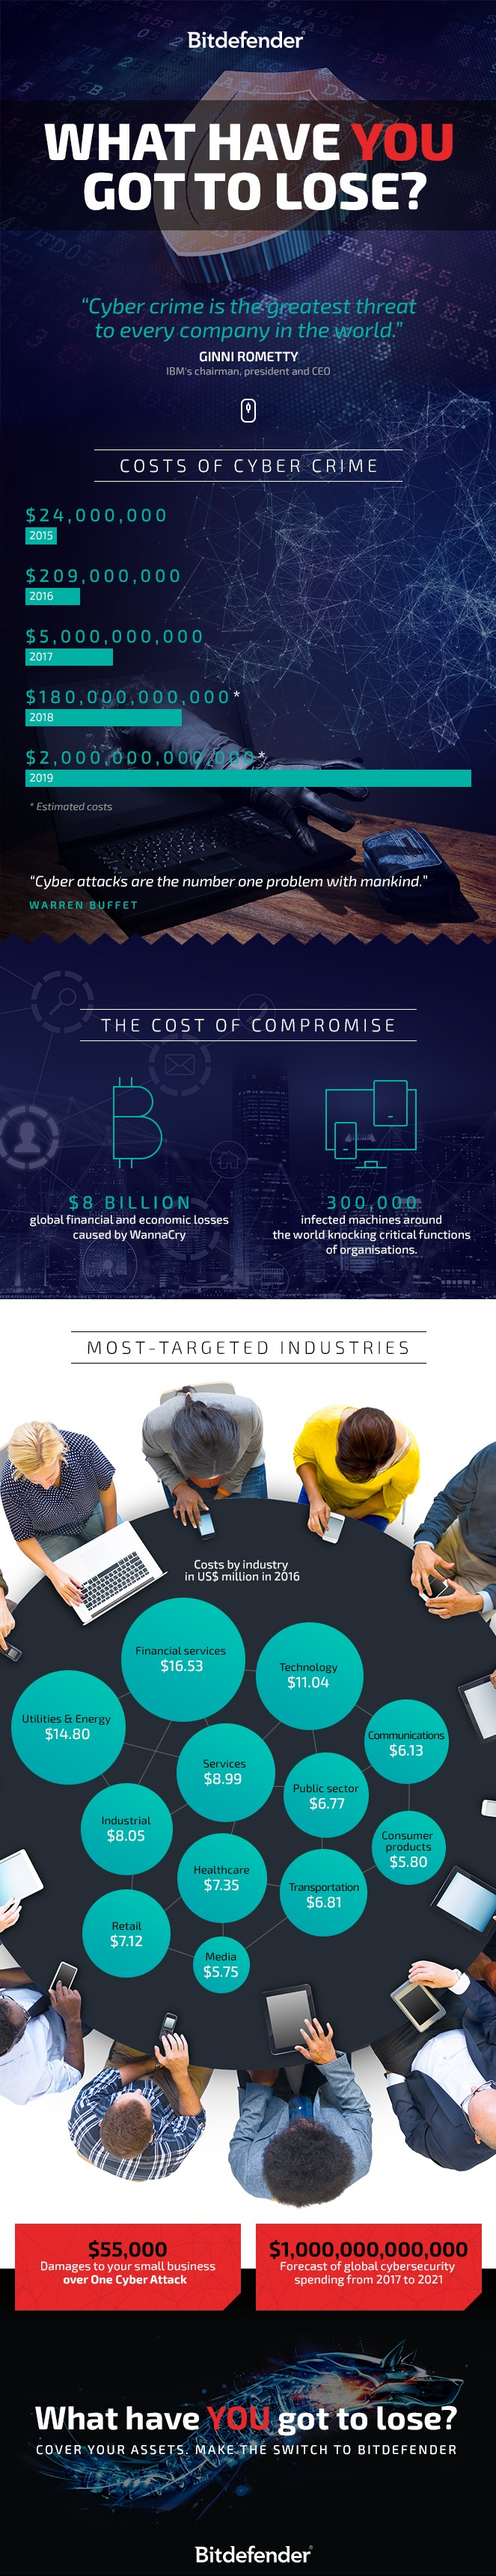 Cost of cybercrime by industry and expected cyber security spending